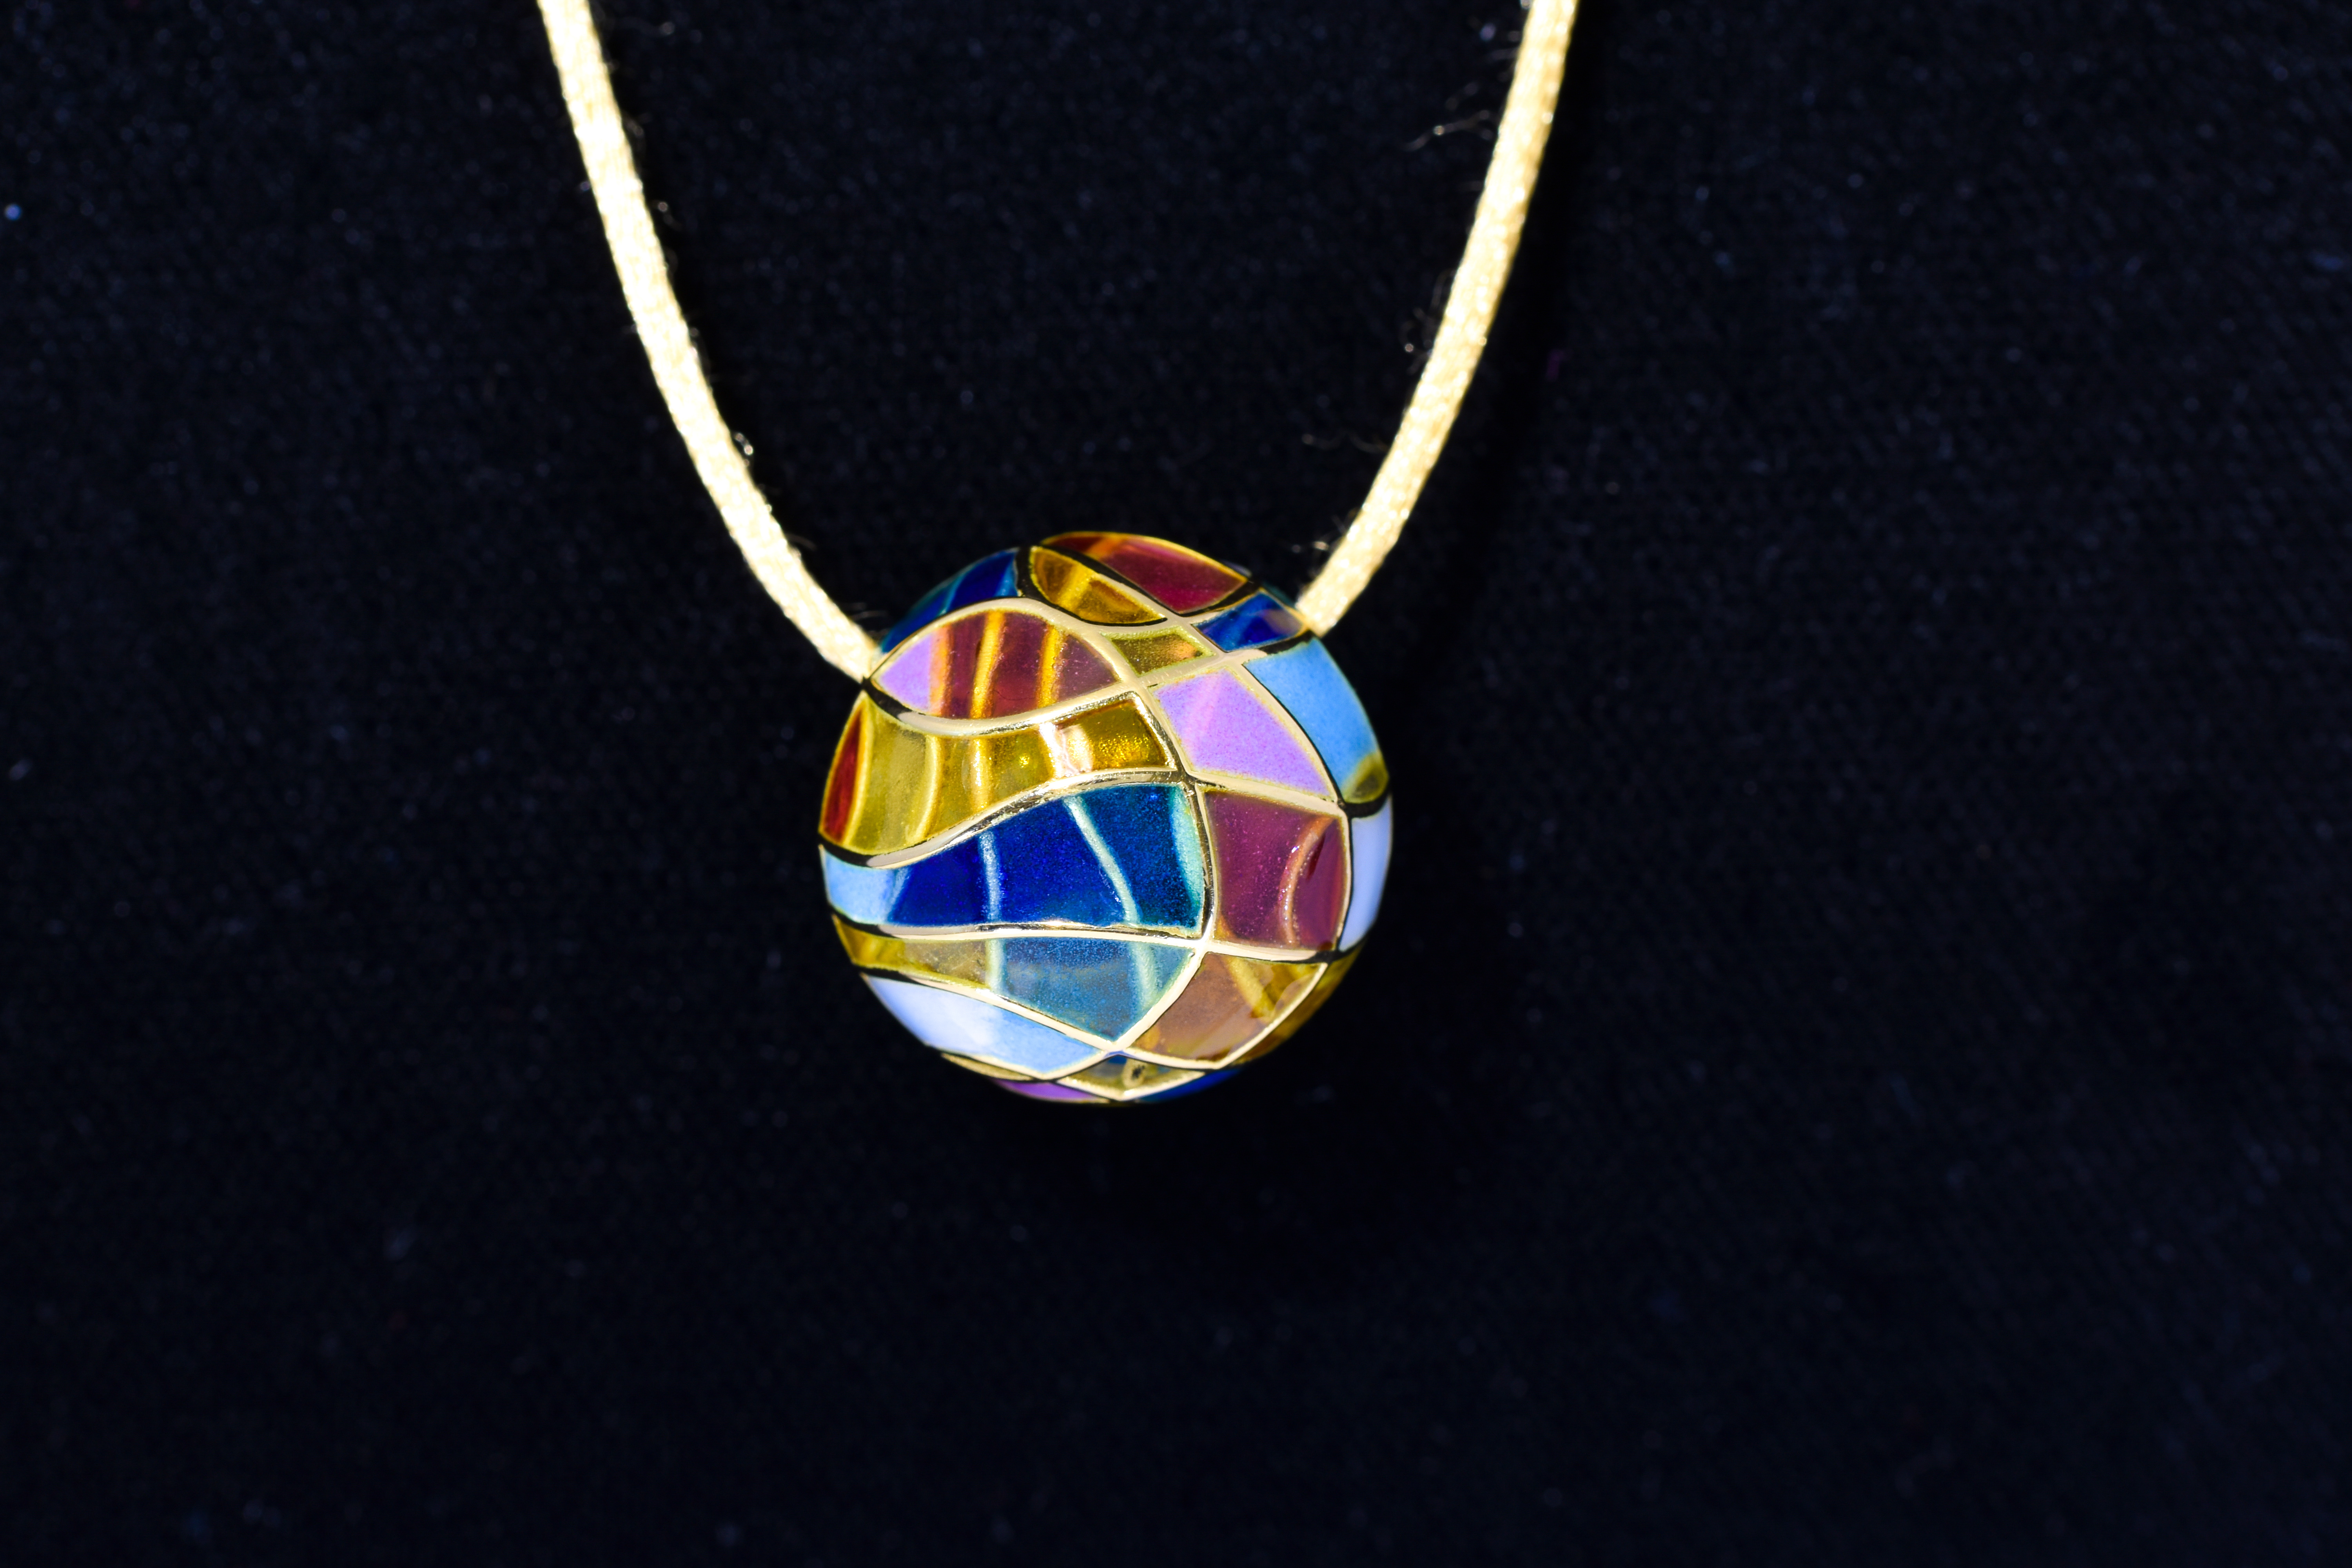 14 kt. Yellow Gold, Multicolor Ball Charm on Silk Rope, Bagues-Masreira